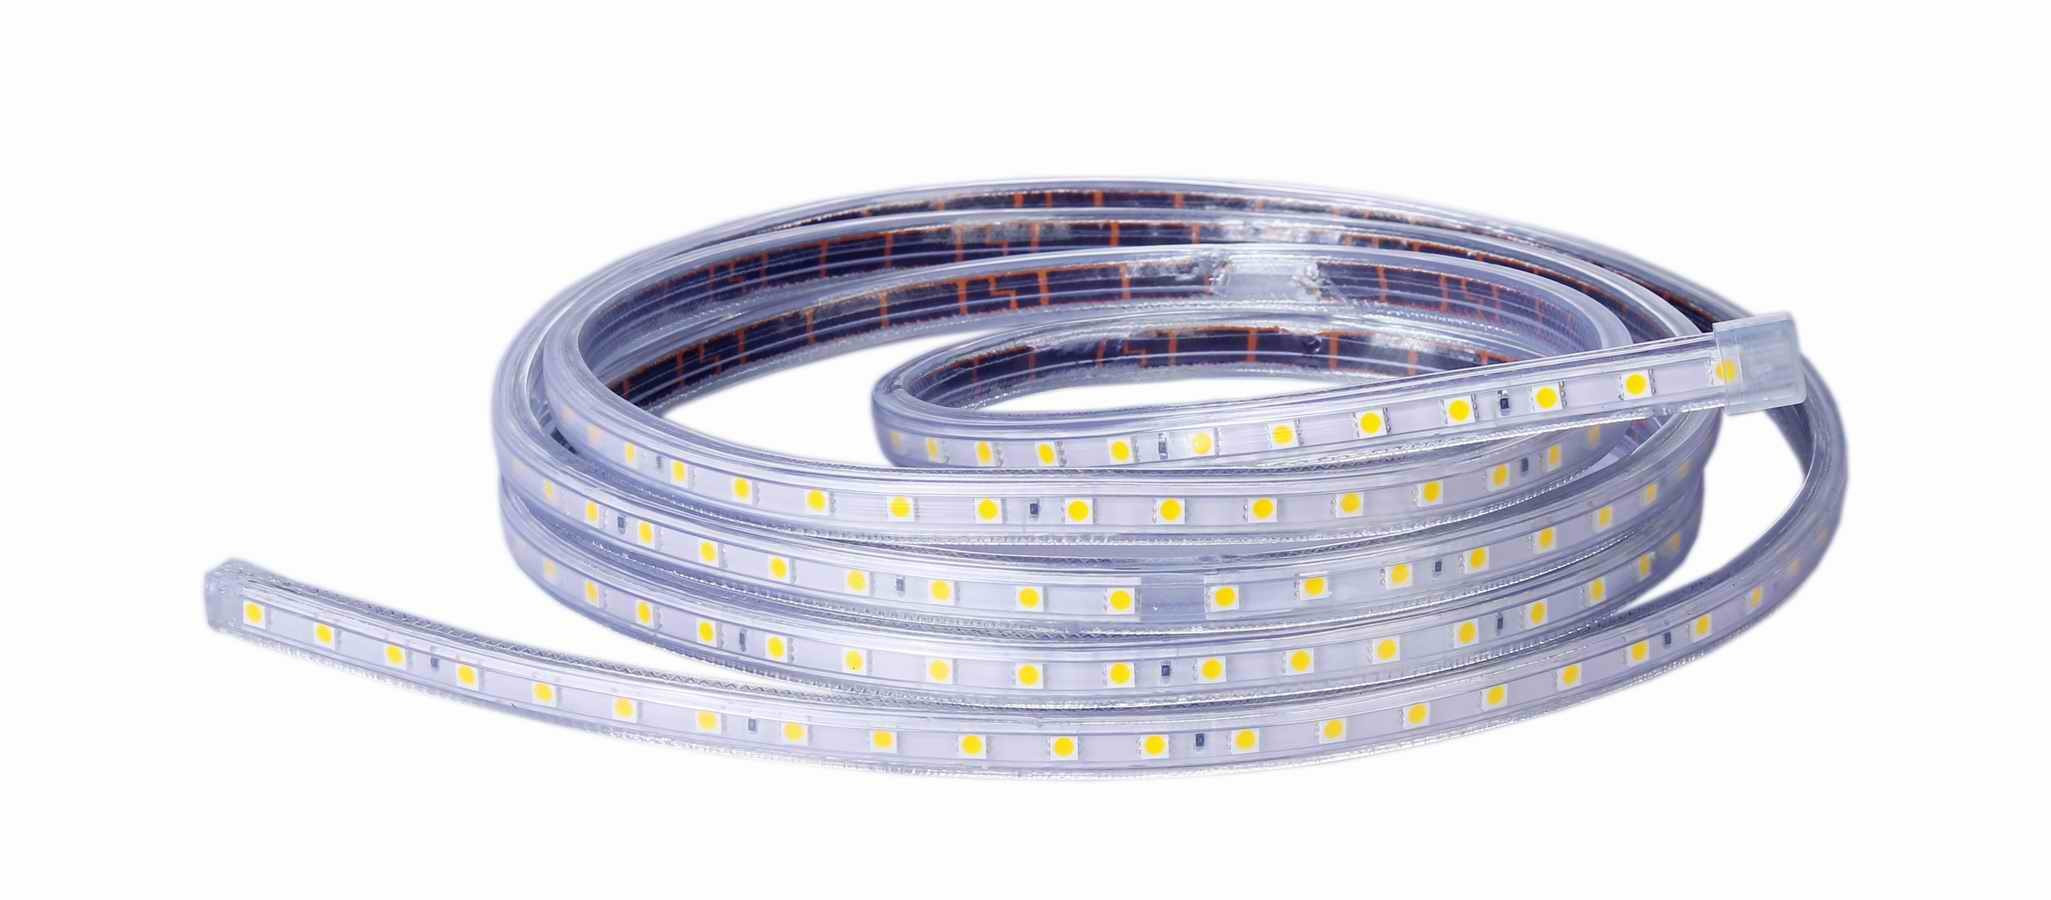 Comprar Tiras De Led Maravilloso Led Flexible Strip Light Smd5050 220v 30led Meter – Led Of Comprar Tiras De Led Increíble Tira De Led Chip Smd5050 Ip65 Rollo 5m Luz Cálida 12v Precio